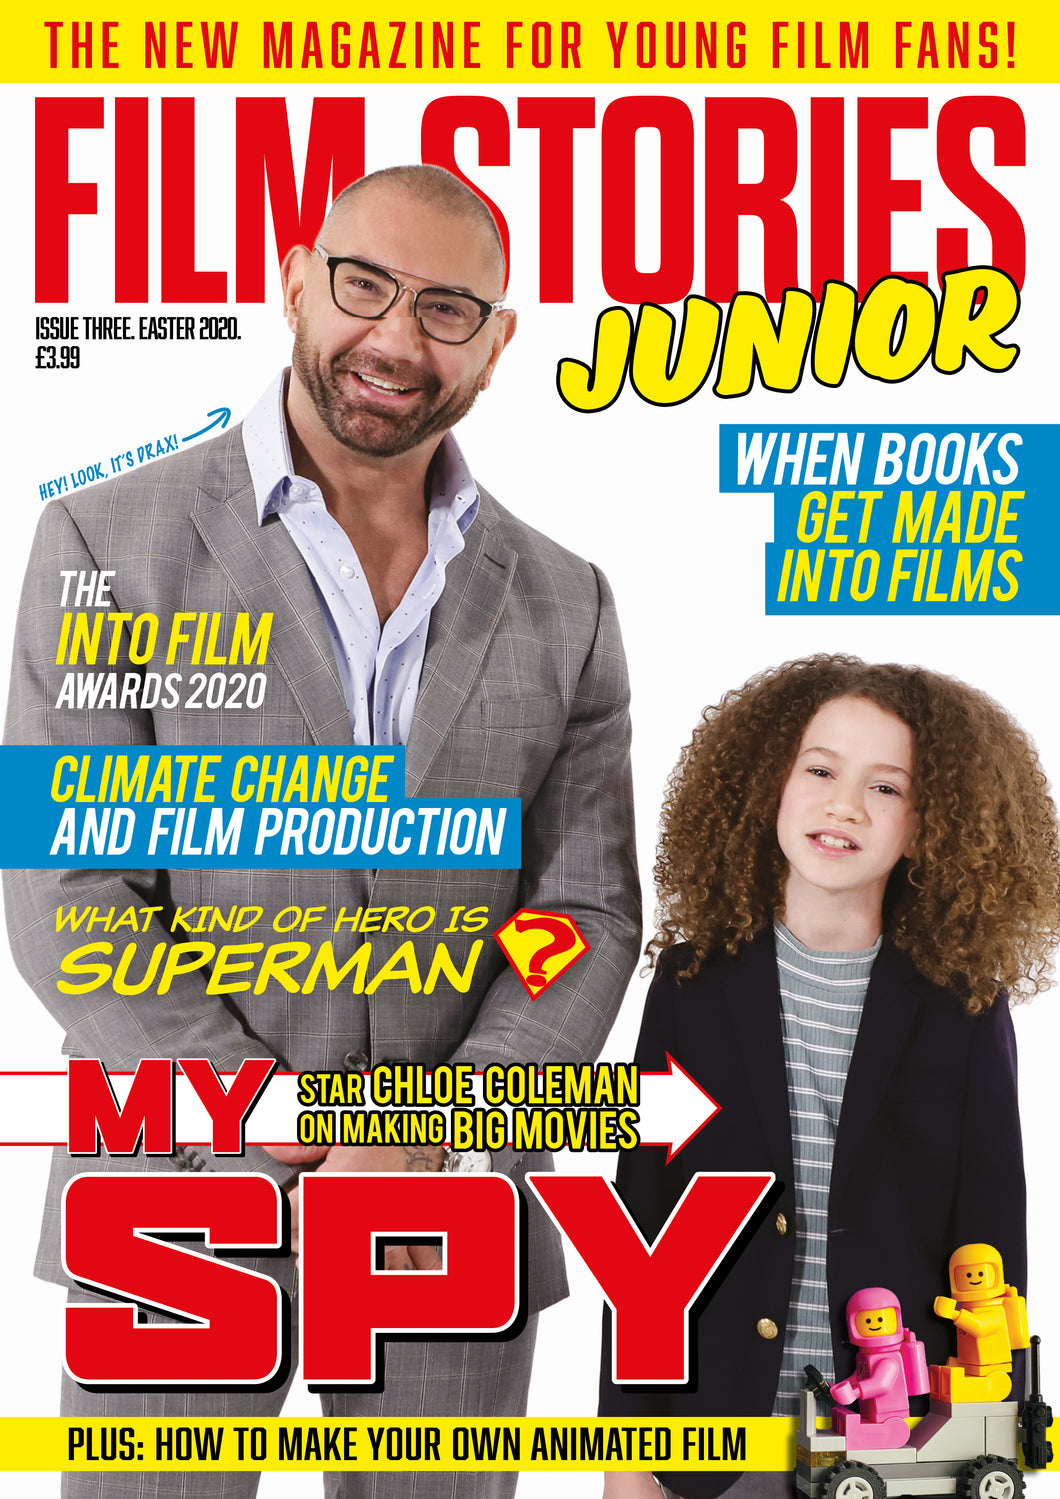 Film Stories Junior: issue 3 Digital Edition (Easter 2020)